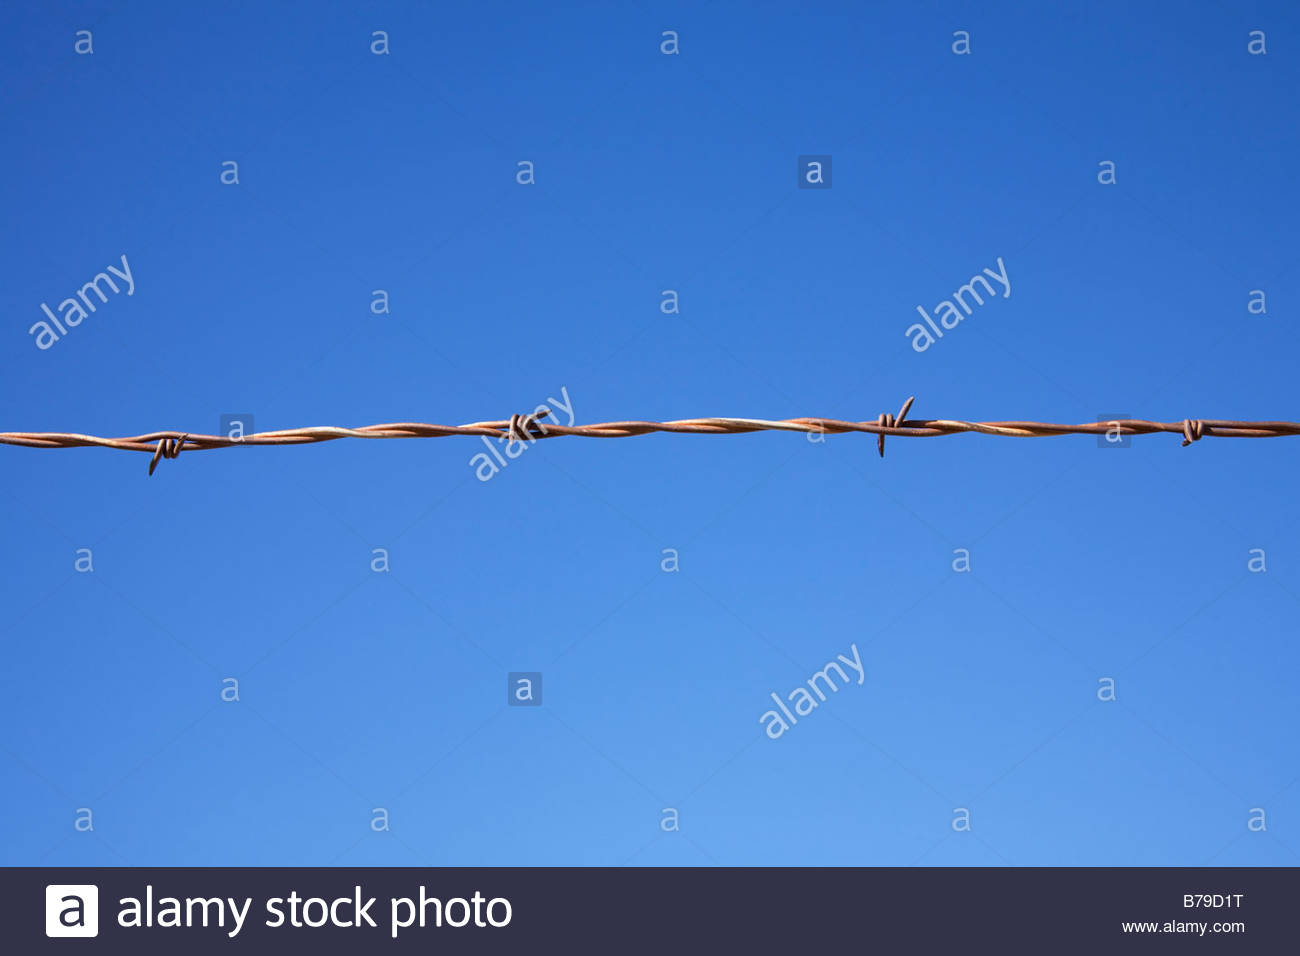 Rusty barb wire fence blue sky background - Stock Image